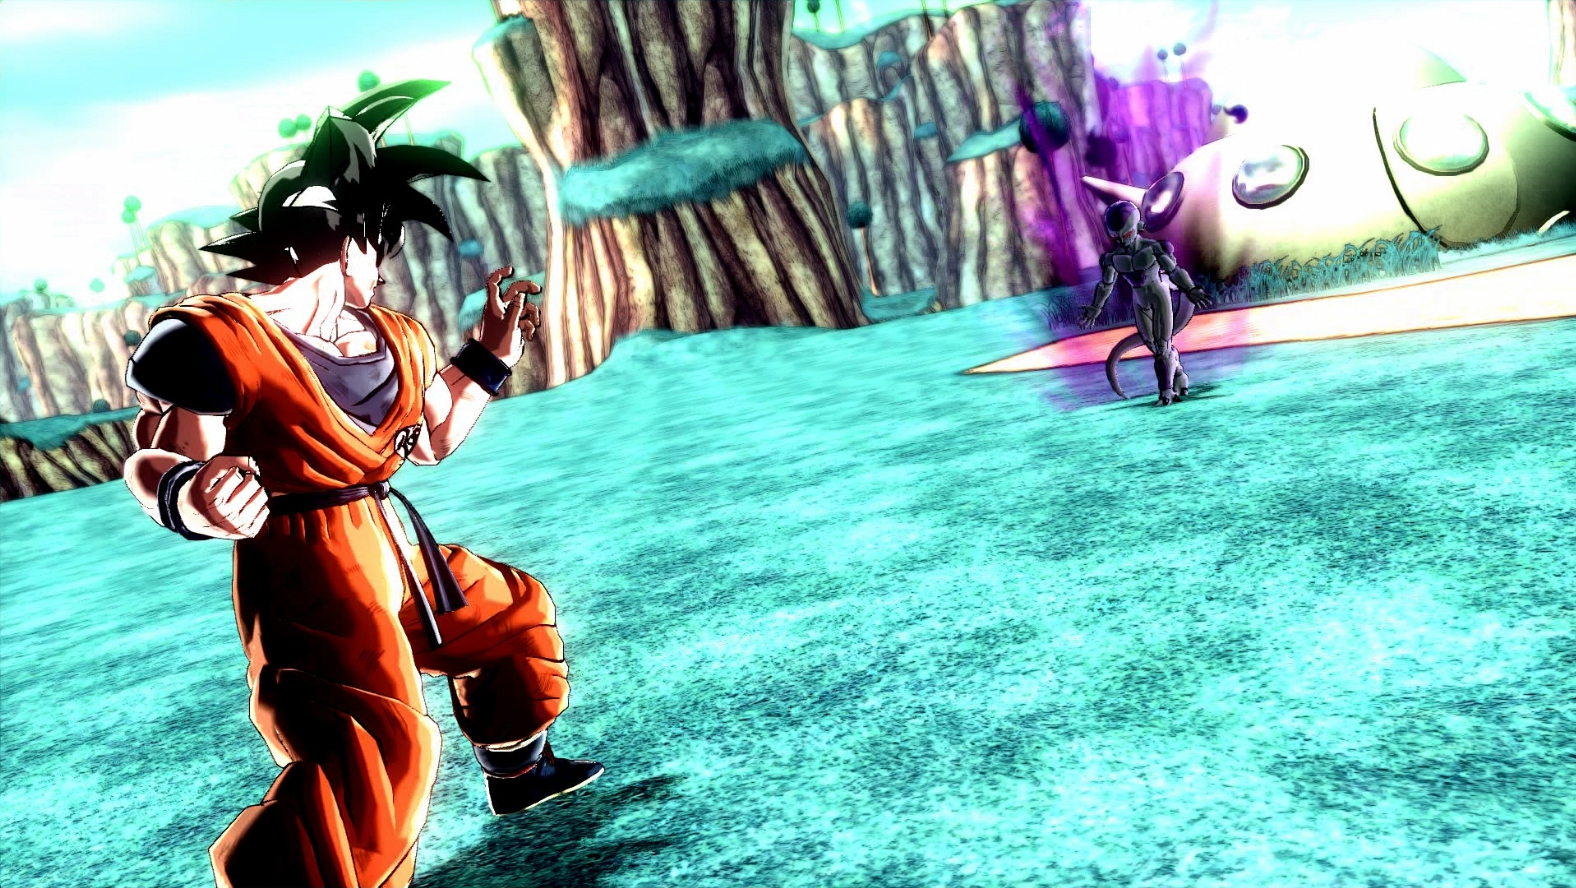 Dragon Ball Xenoverse Jan 2015 Screenshots 16